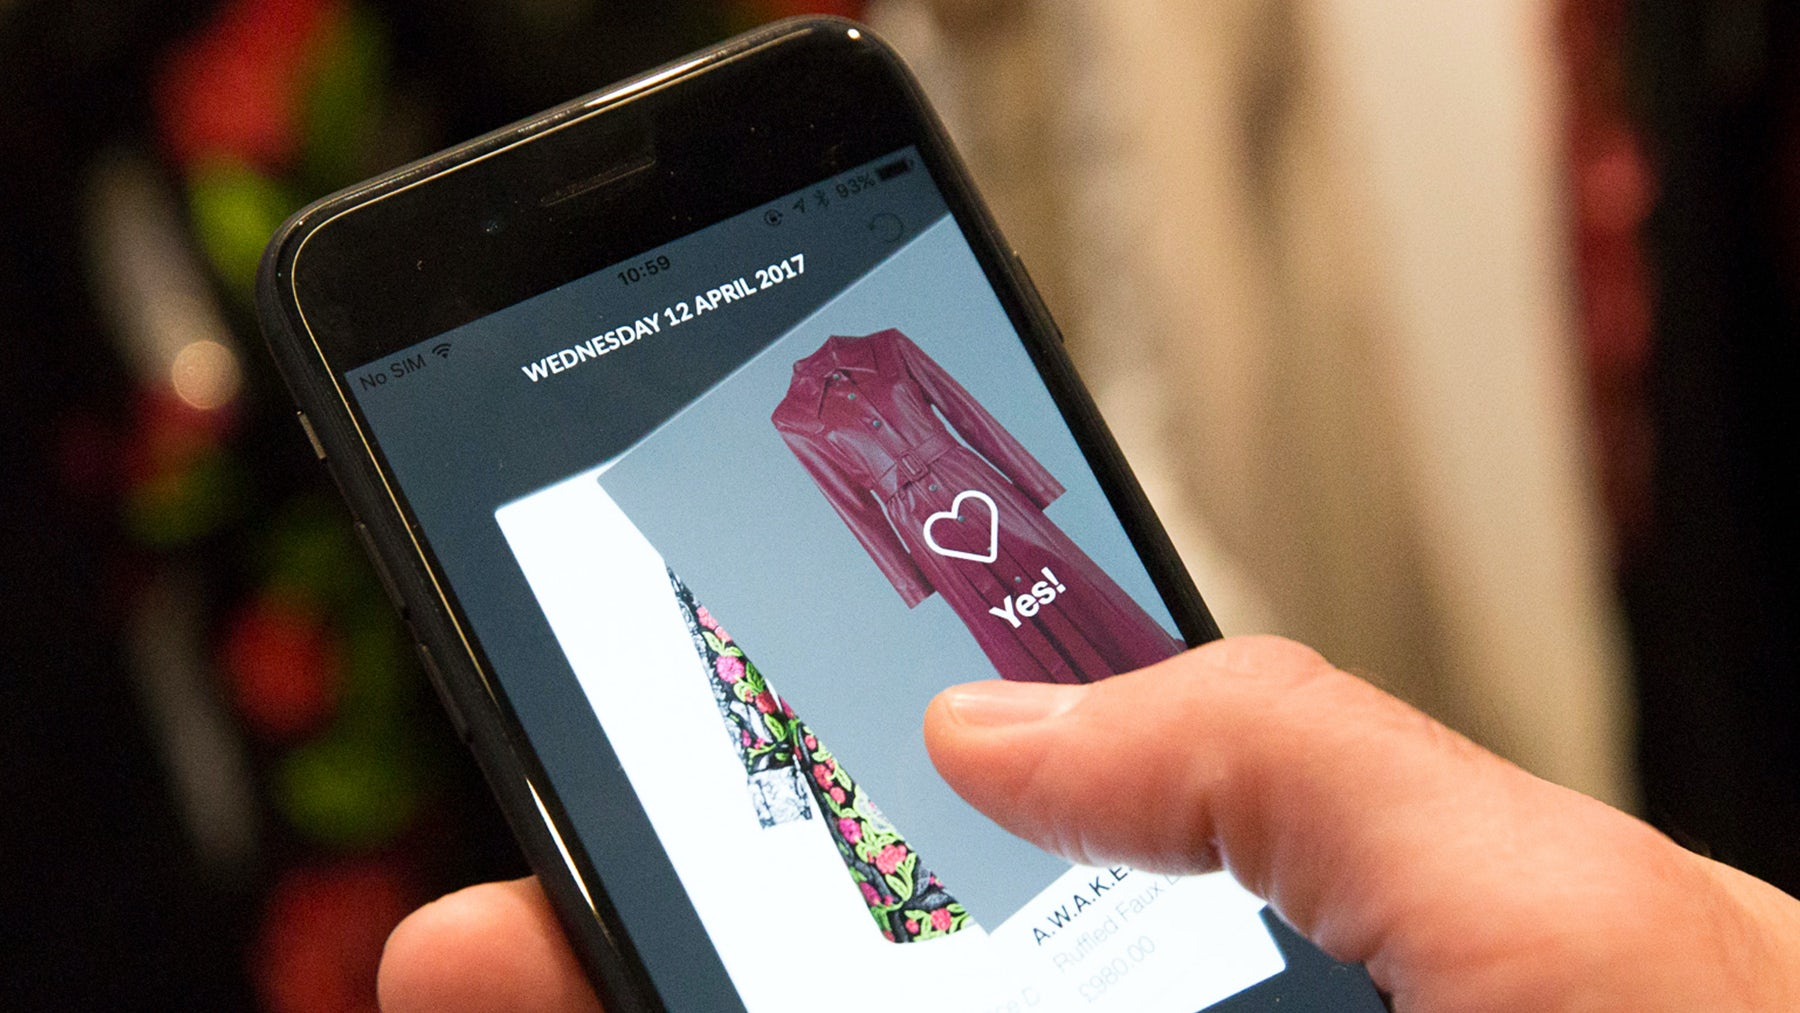 Article cover of Why Farfetch's Free-Spending Ways Have Some Investors Concerned